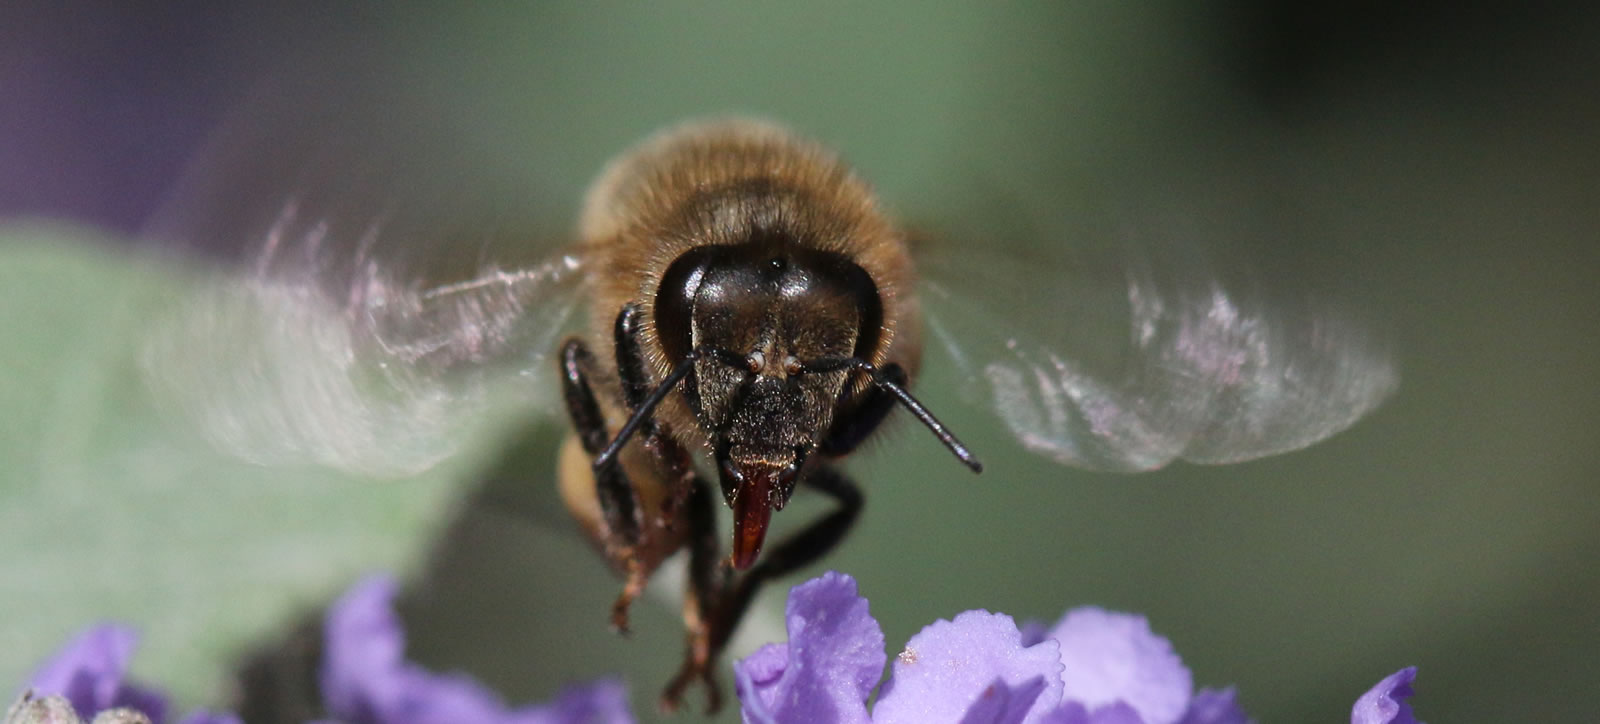 Weybridge Beekeeping division are running a training course, both theory and practical, for new beekeepers